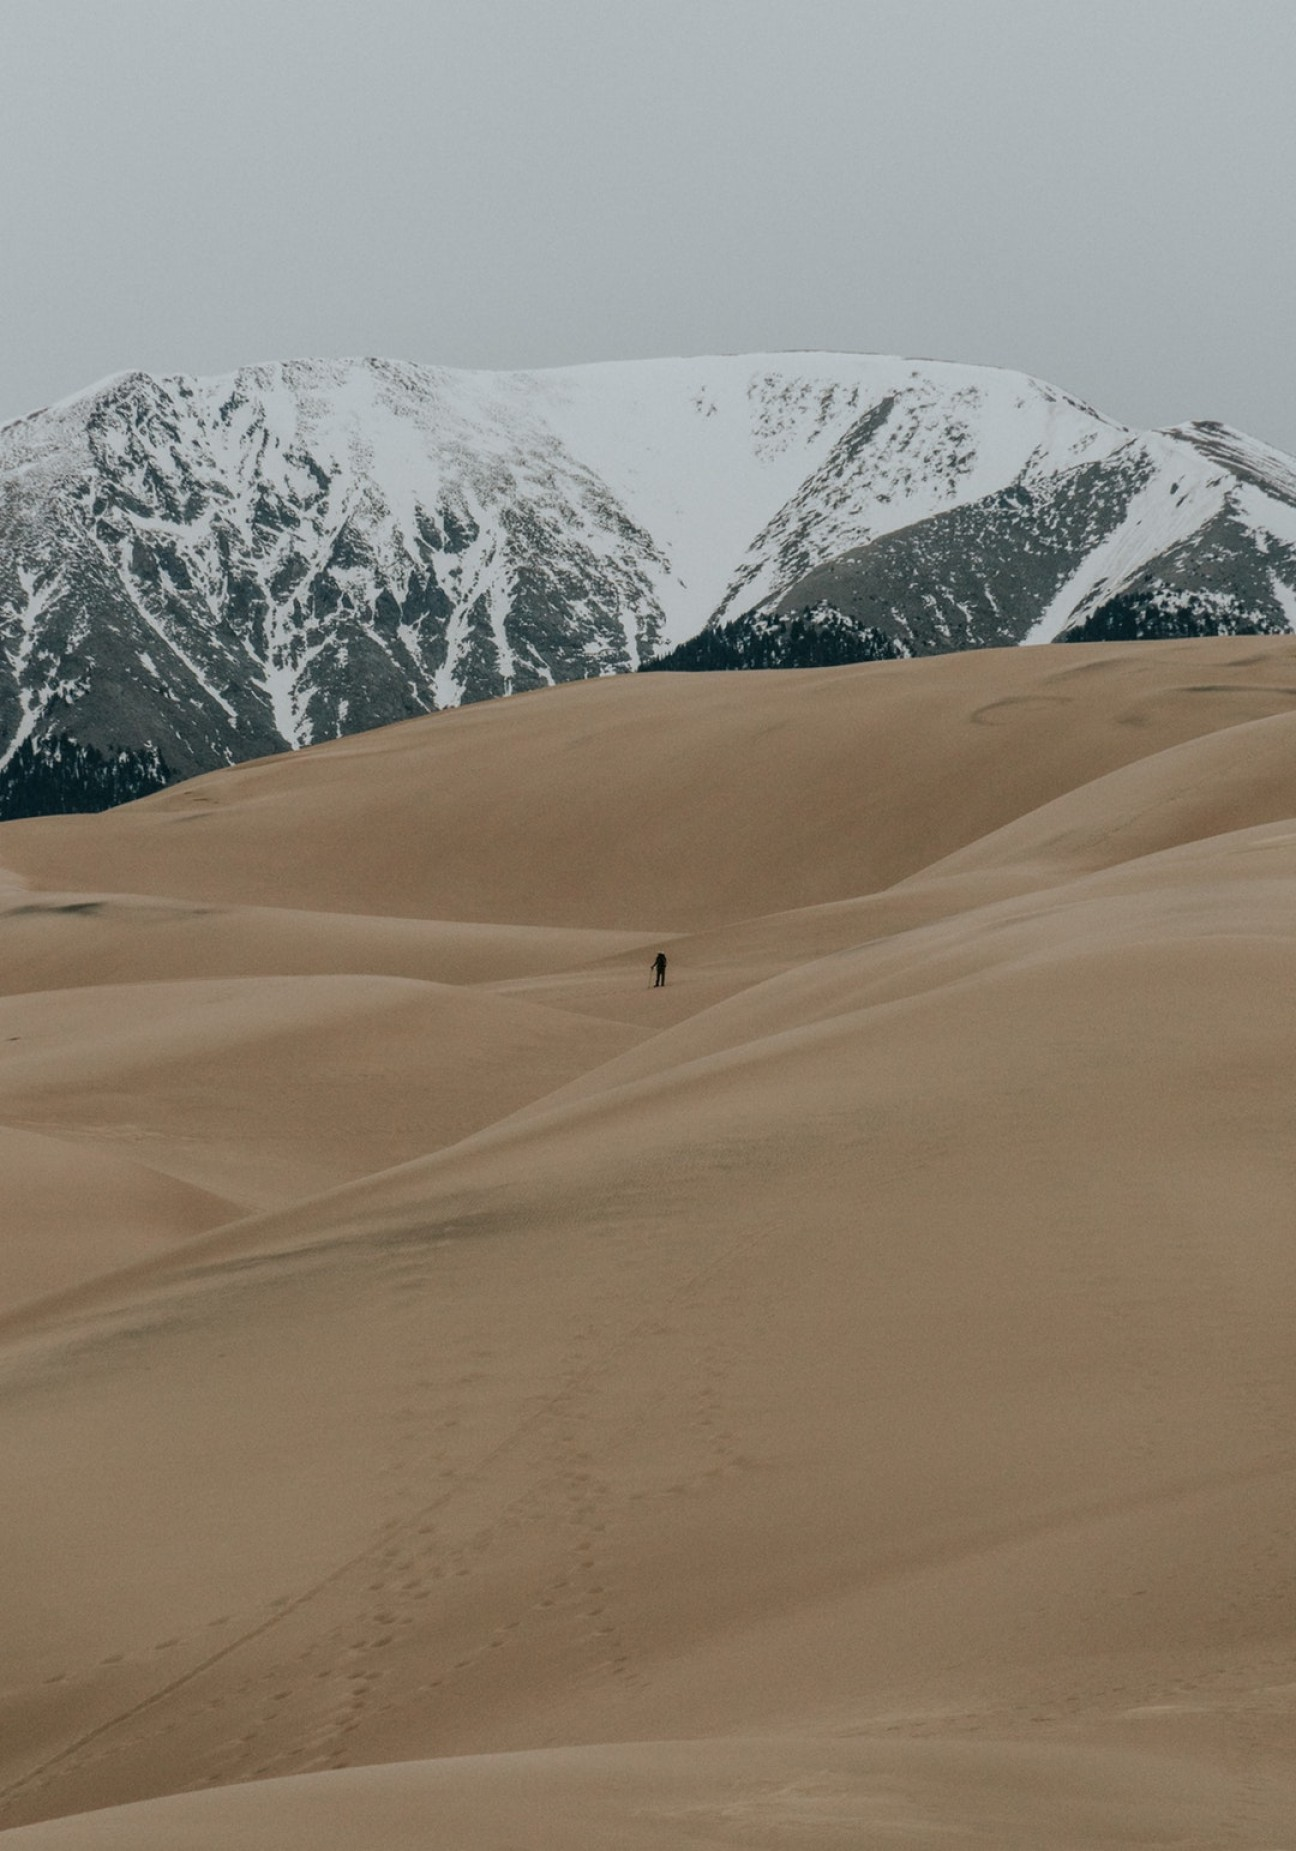 Sand Dune Silhouettes Vectors: The Silhouette Of A Lone Hiker Among Sand Dunes With Snowy Mountains On The Horizon